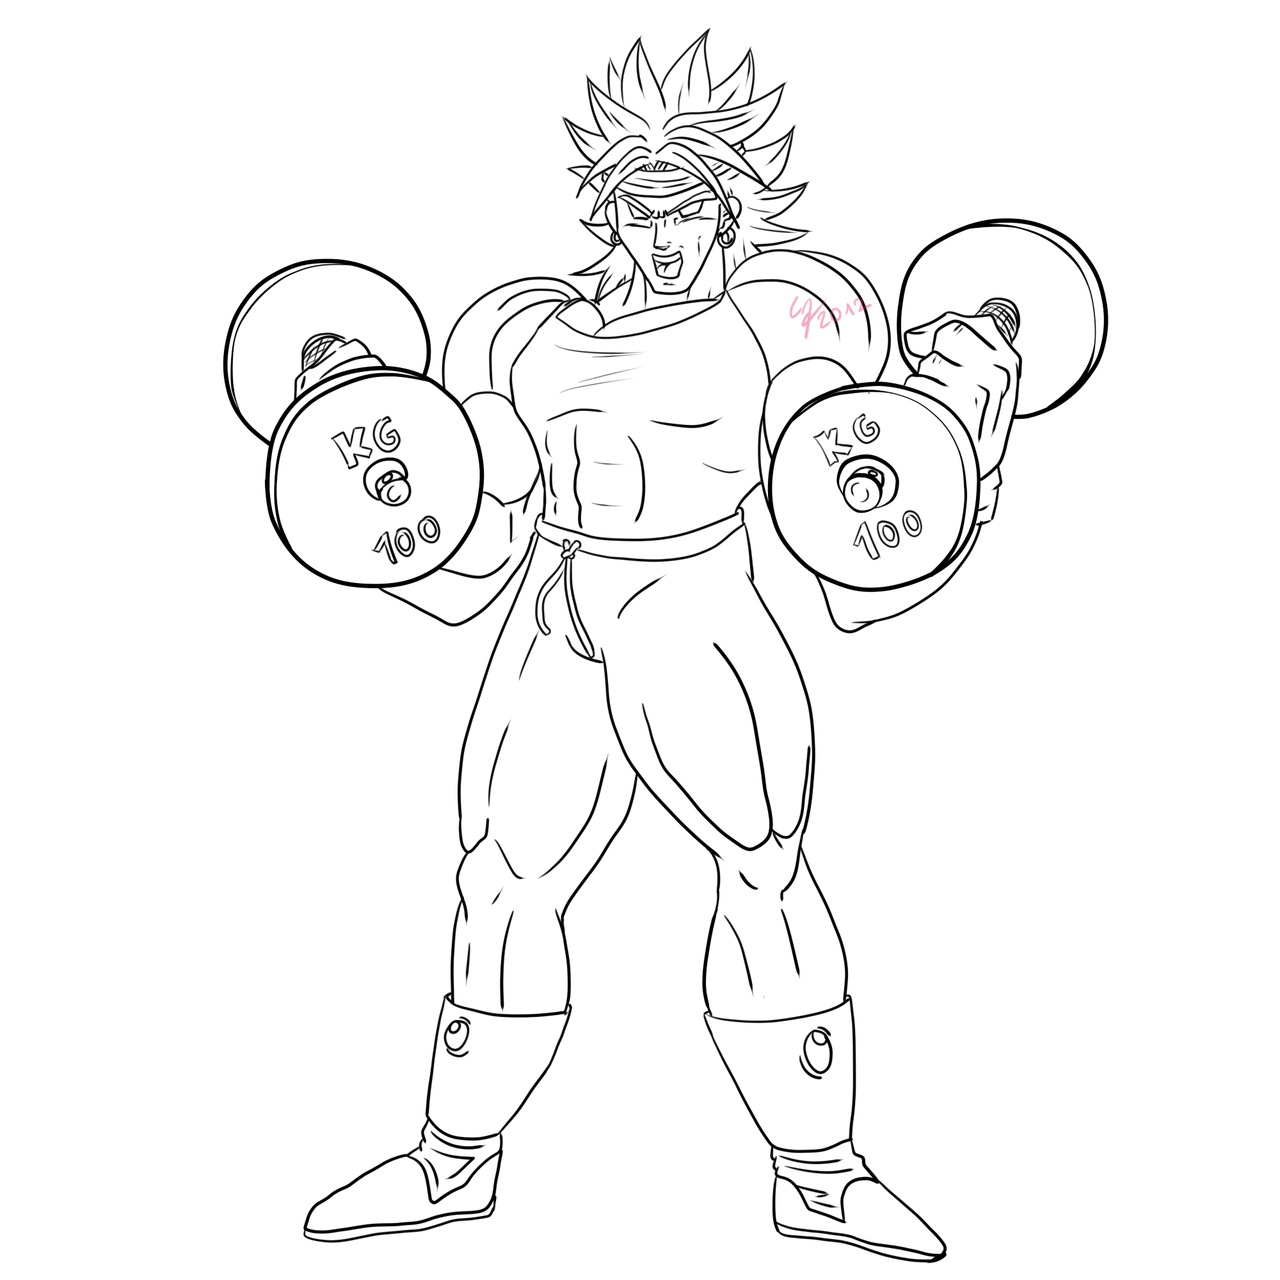 Broly the trainer lineart by ShynTheTruth on DeviantArt